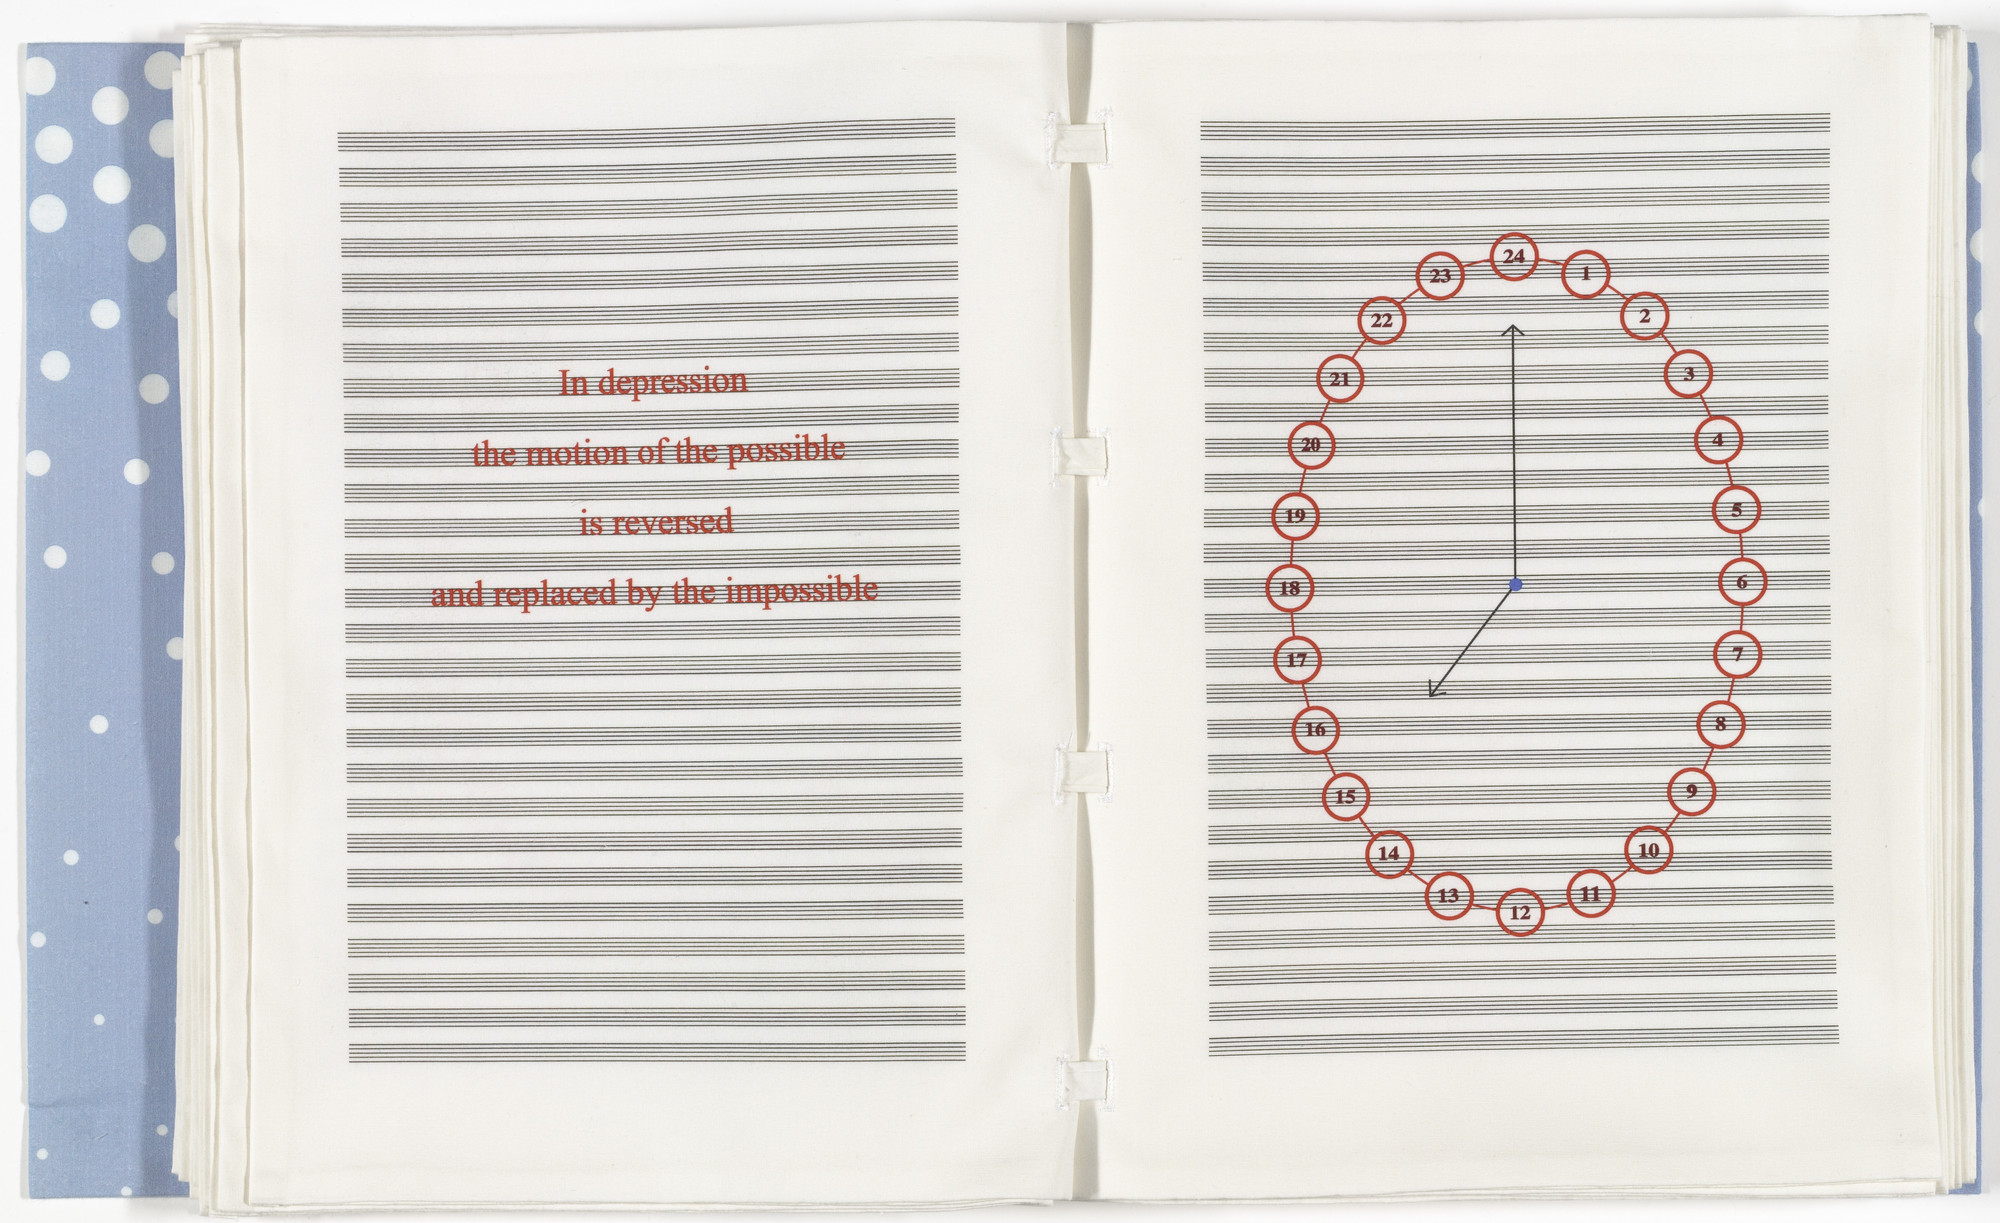 Louise Bourgeois. Untitled, no. 10 of 24, from the illustrated book, Hours of the Day. 2006